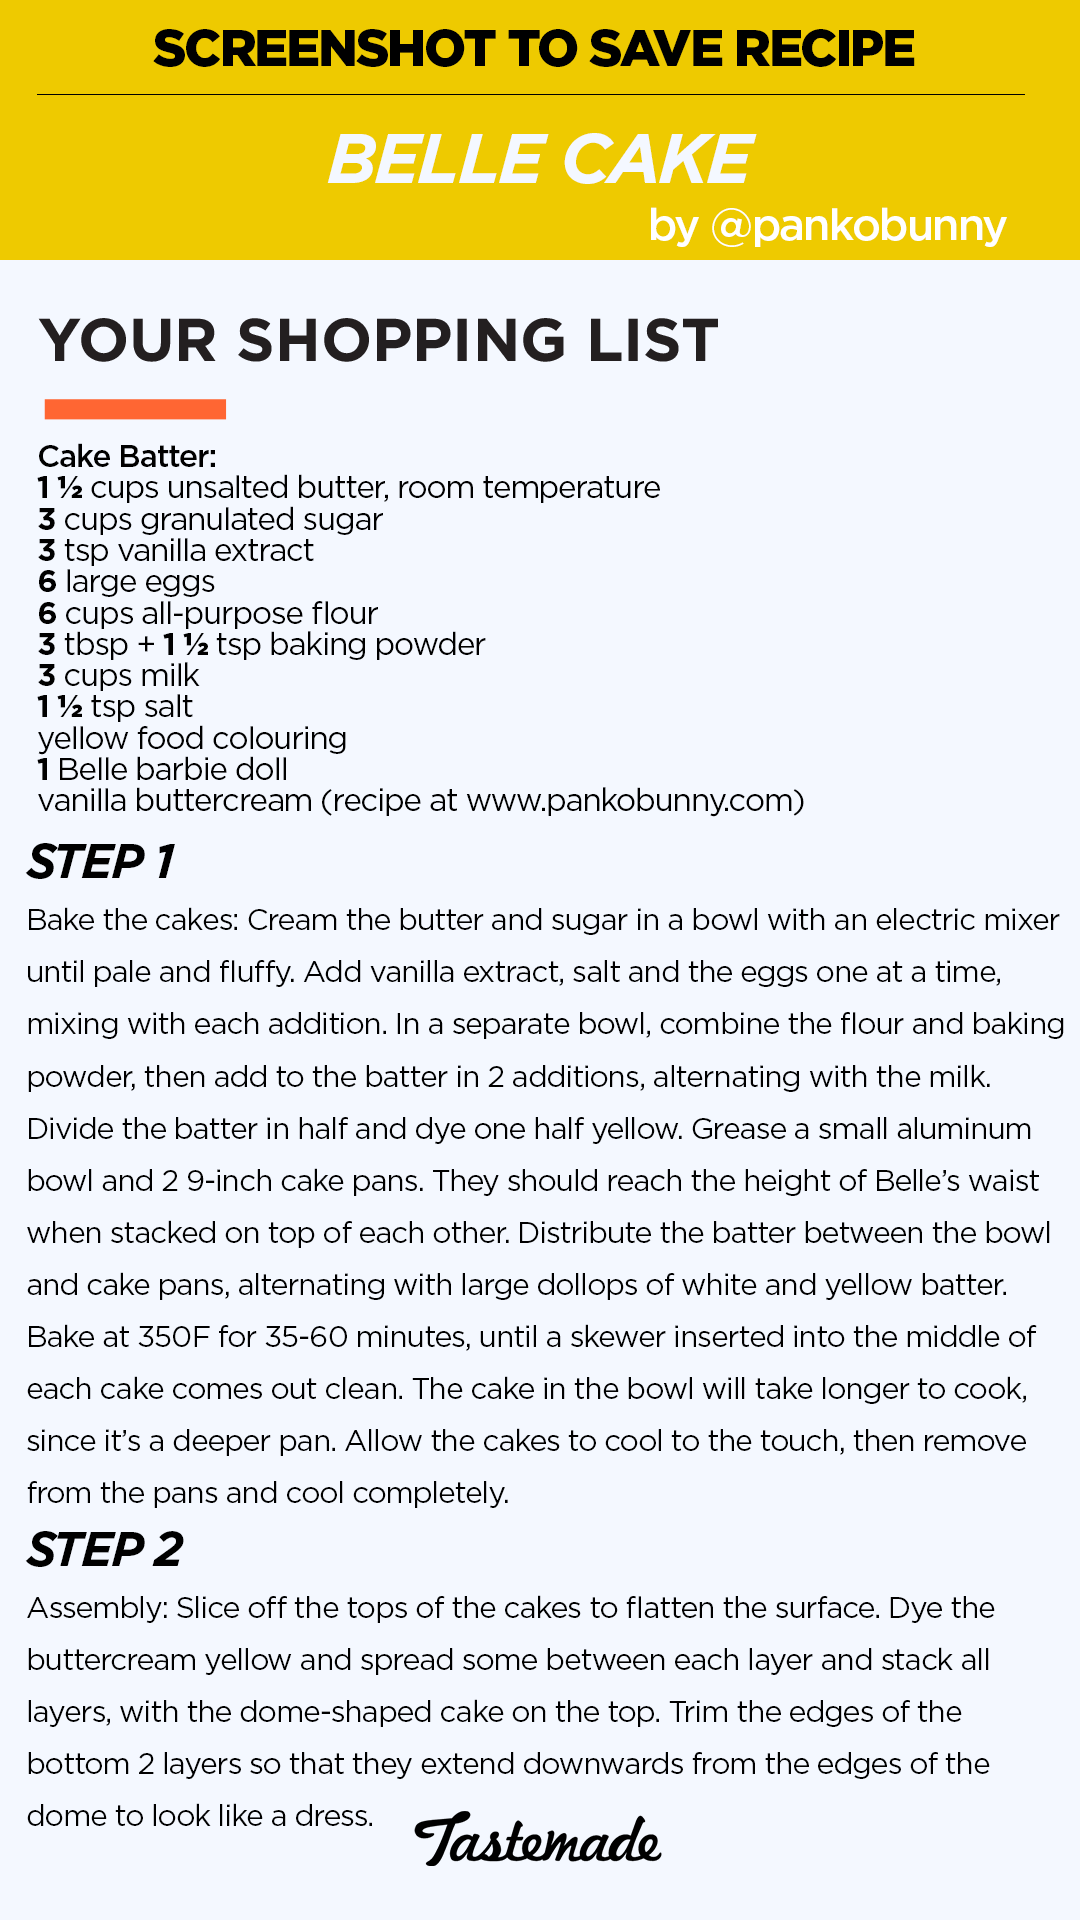 How to divide cake recipe in half